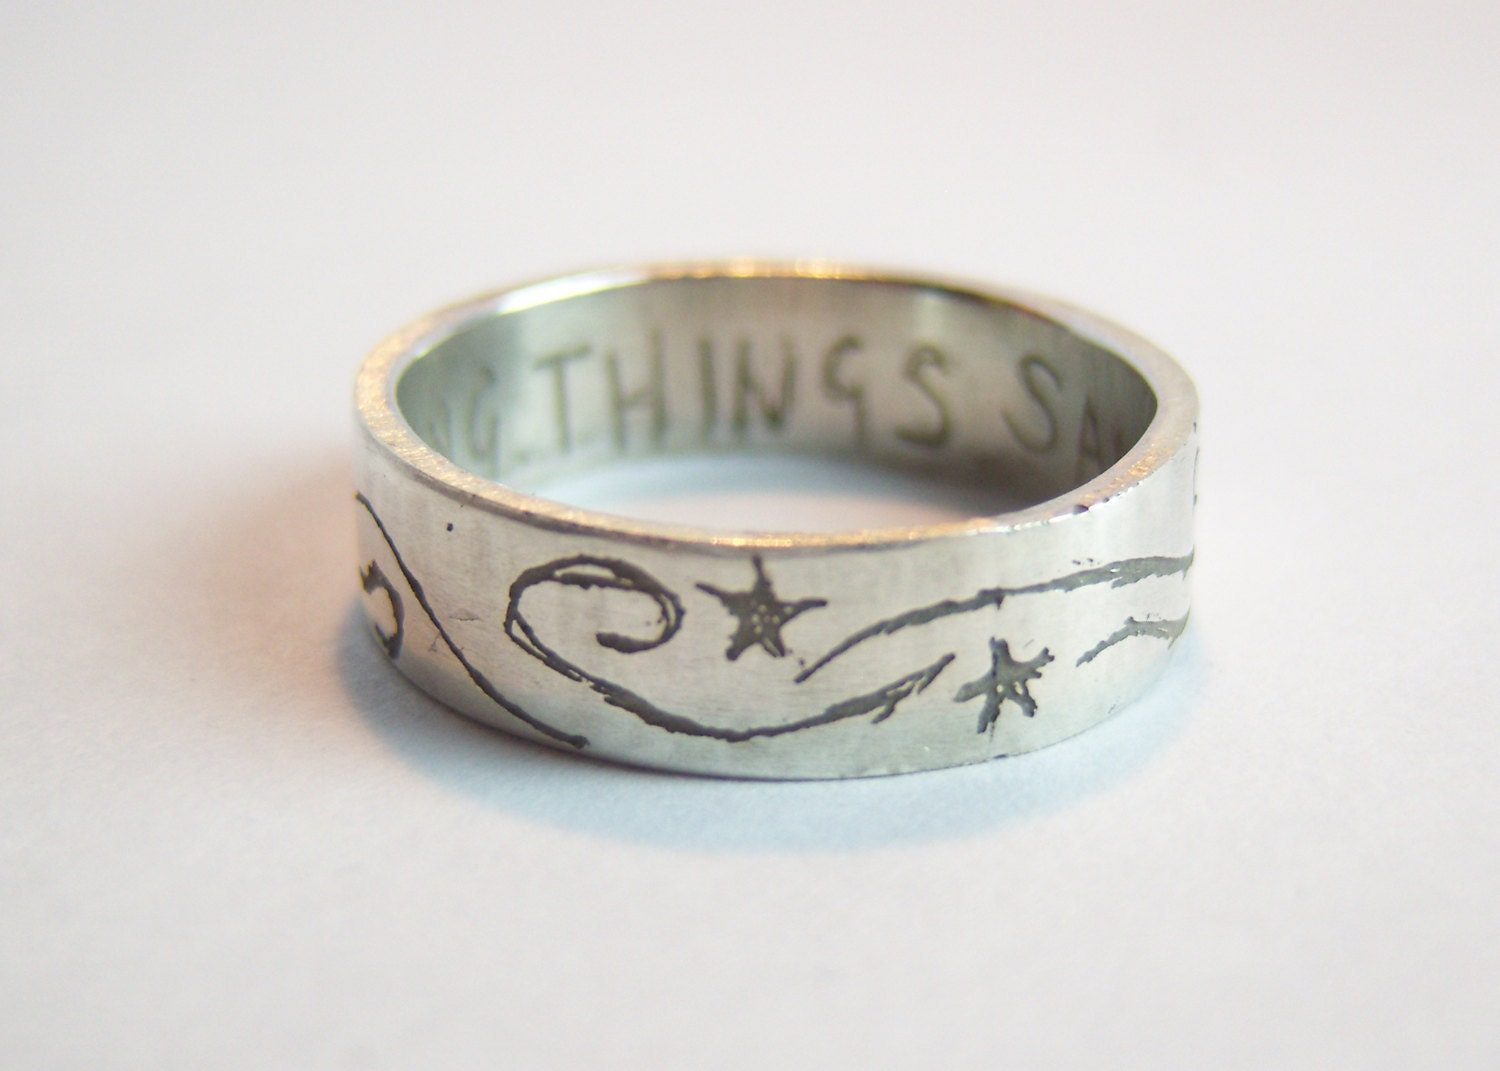 Supernatural etched silver ring Saving People Hunting Things quotation.